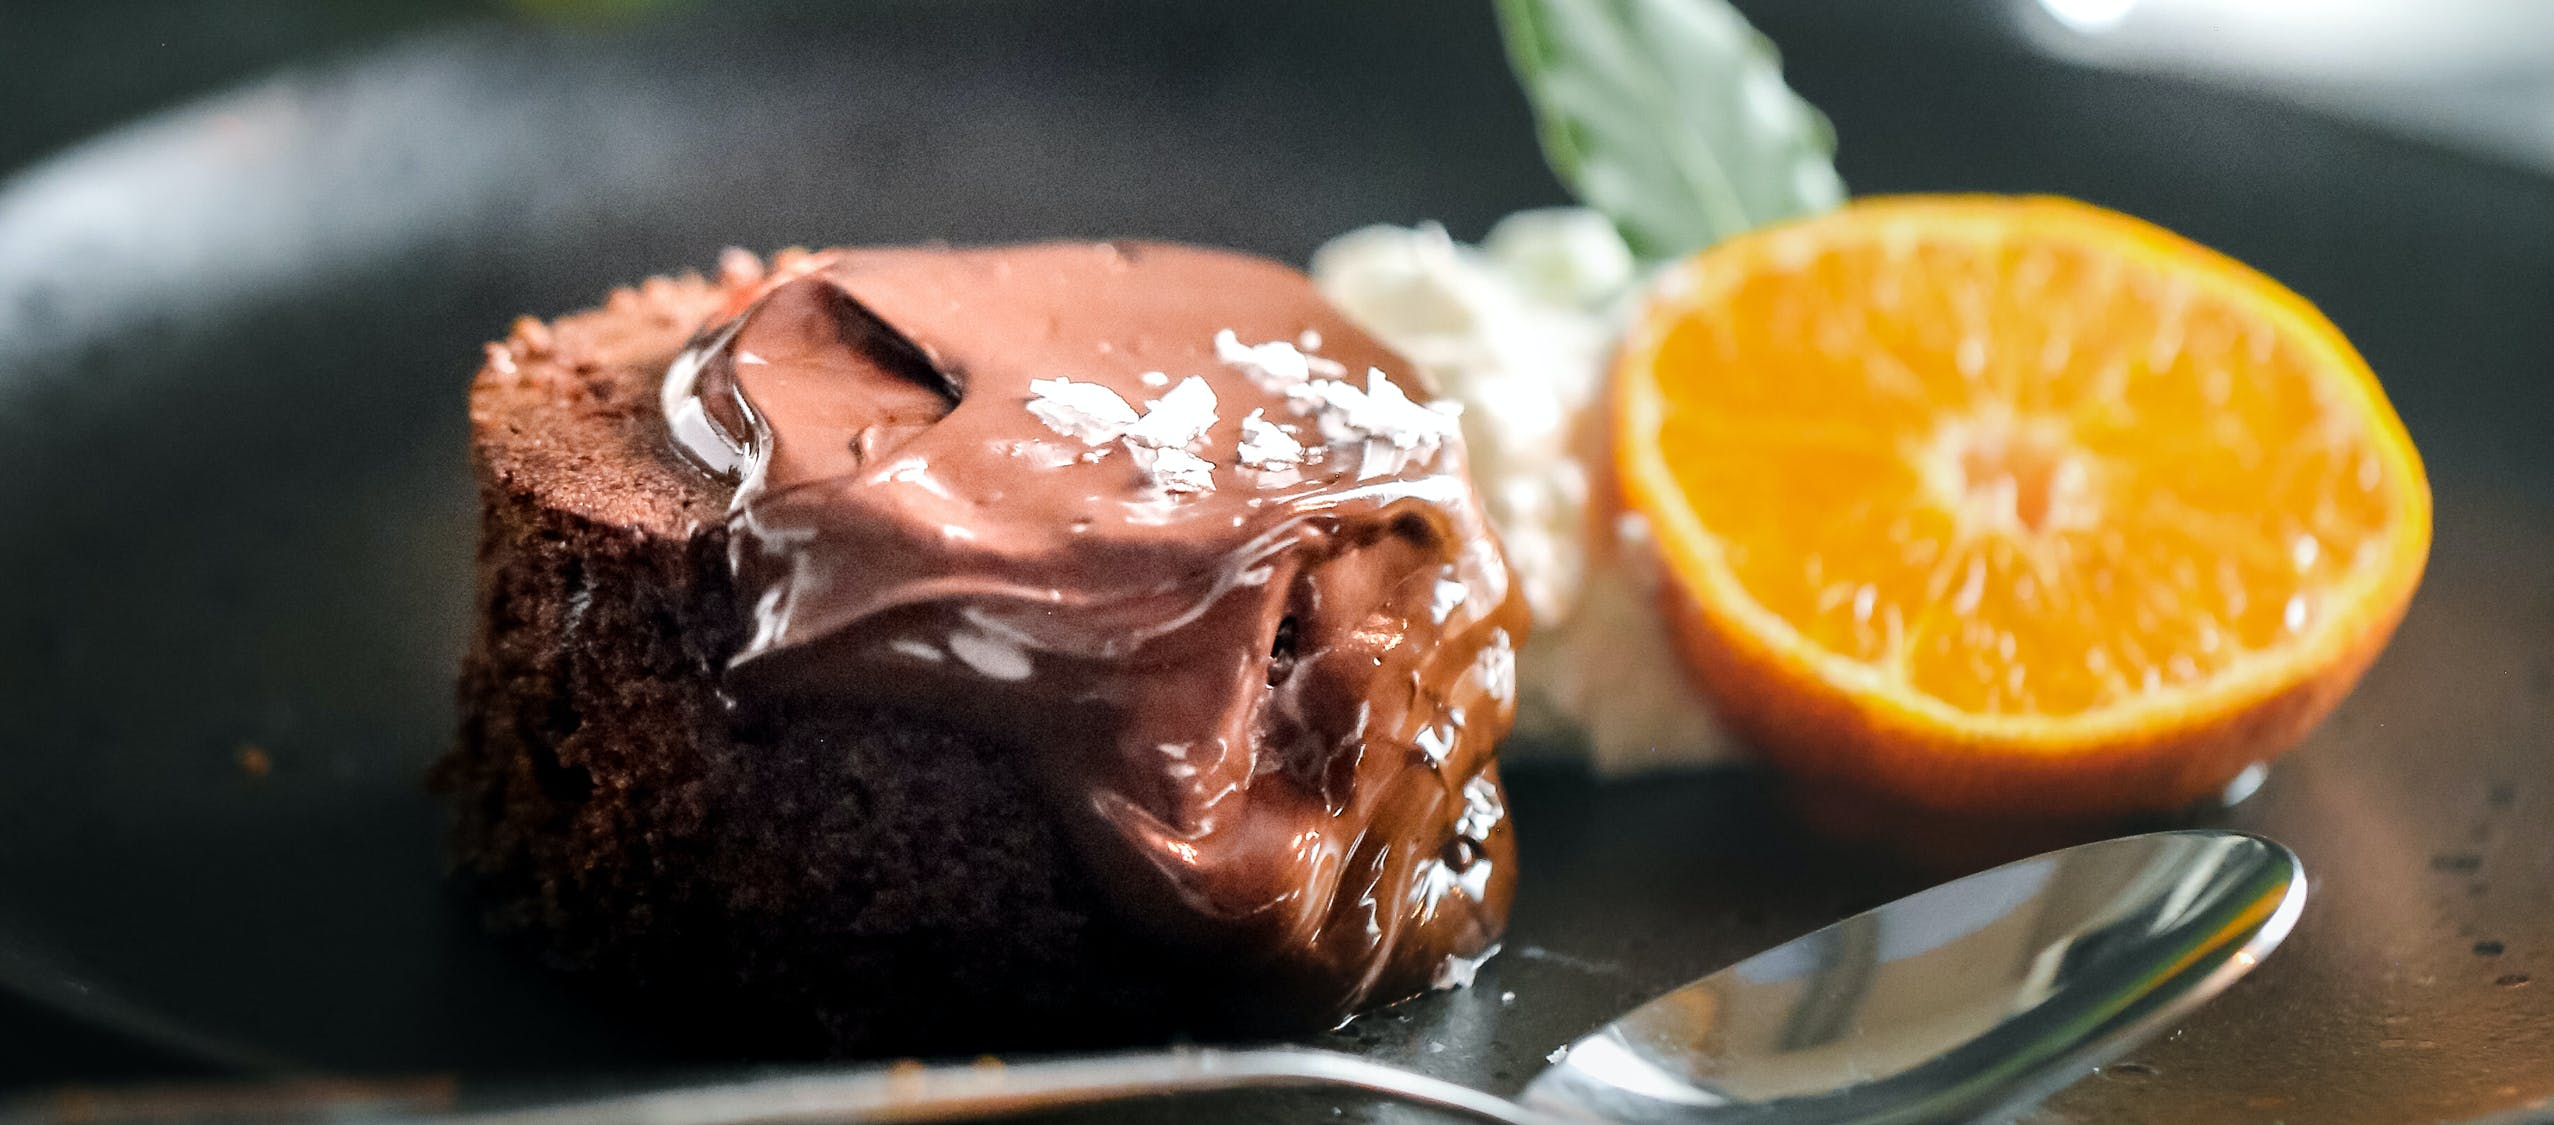 Chocolate Orange Fondant